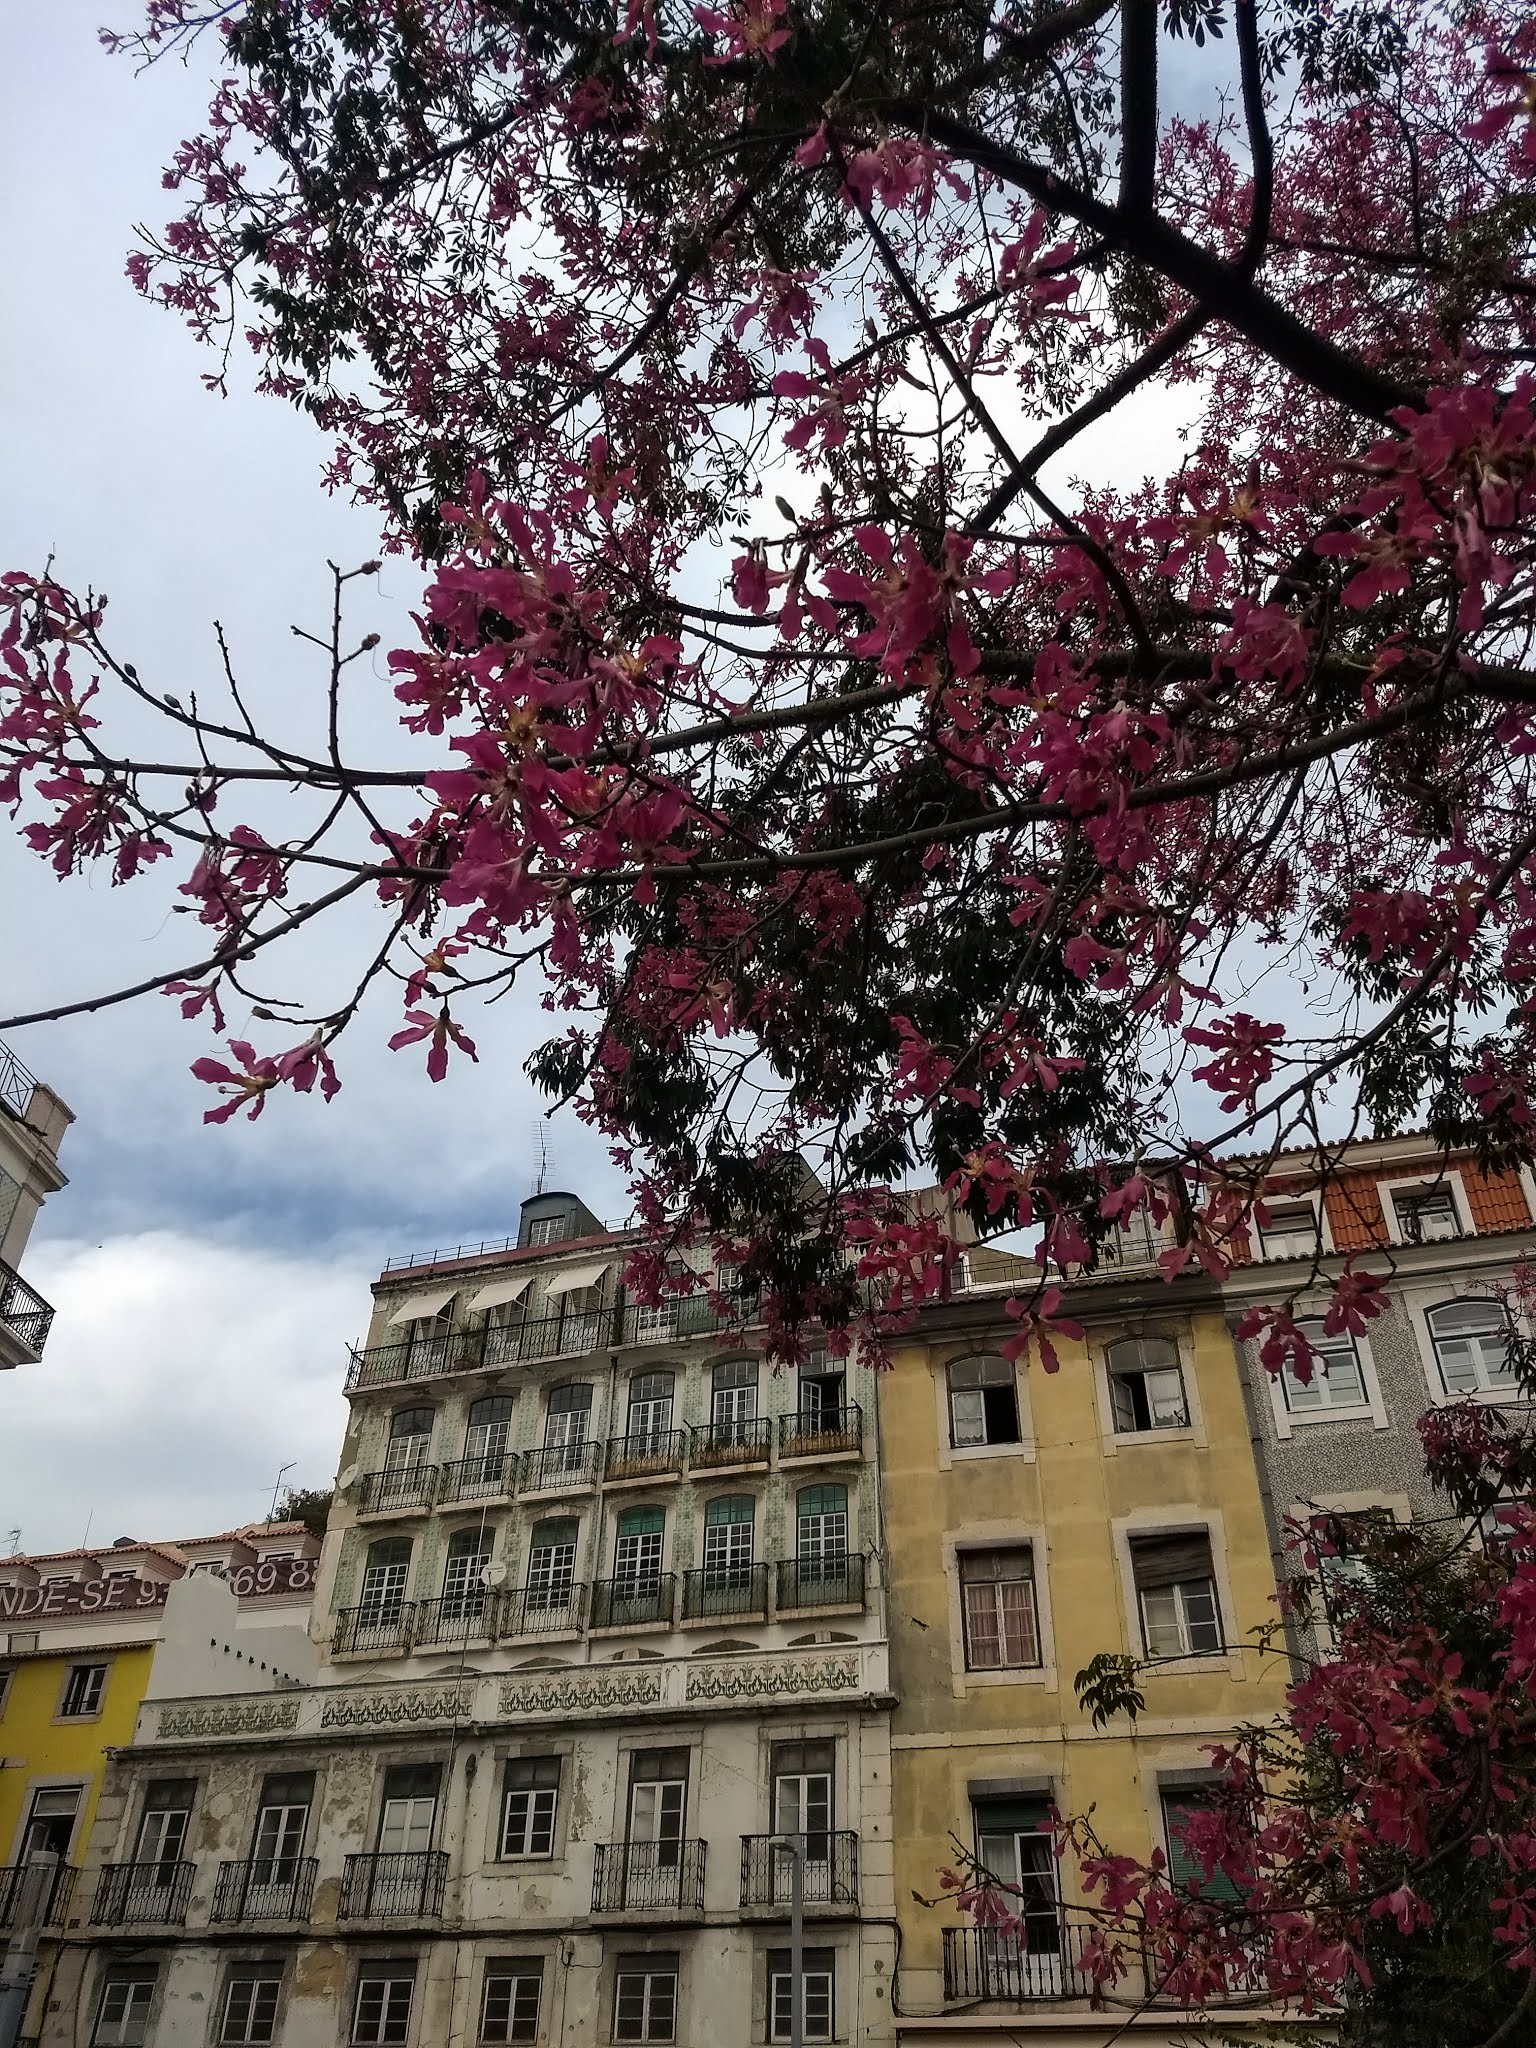 A flowering orchid tree in front of buildings in Liston, Portugal.